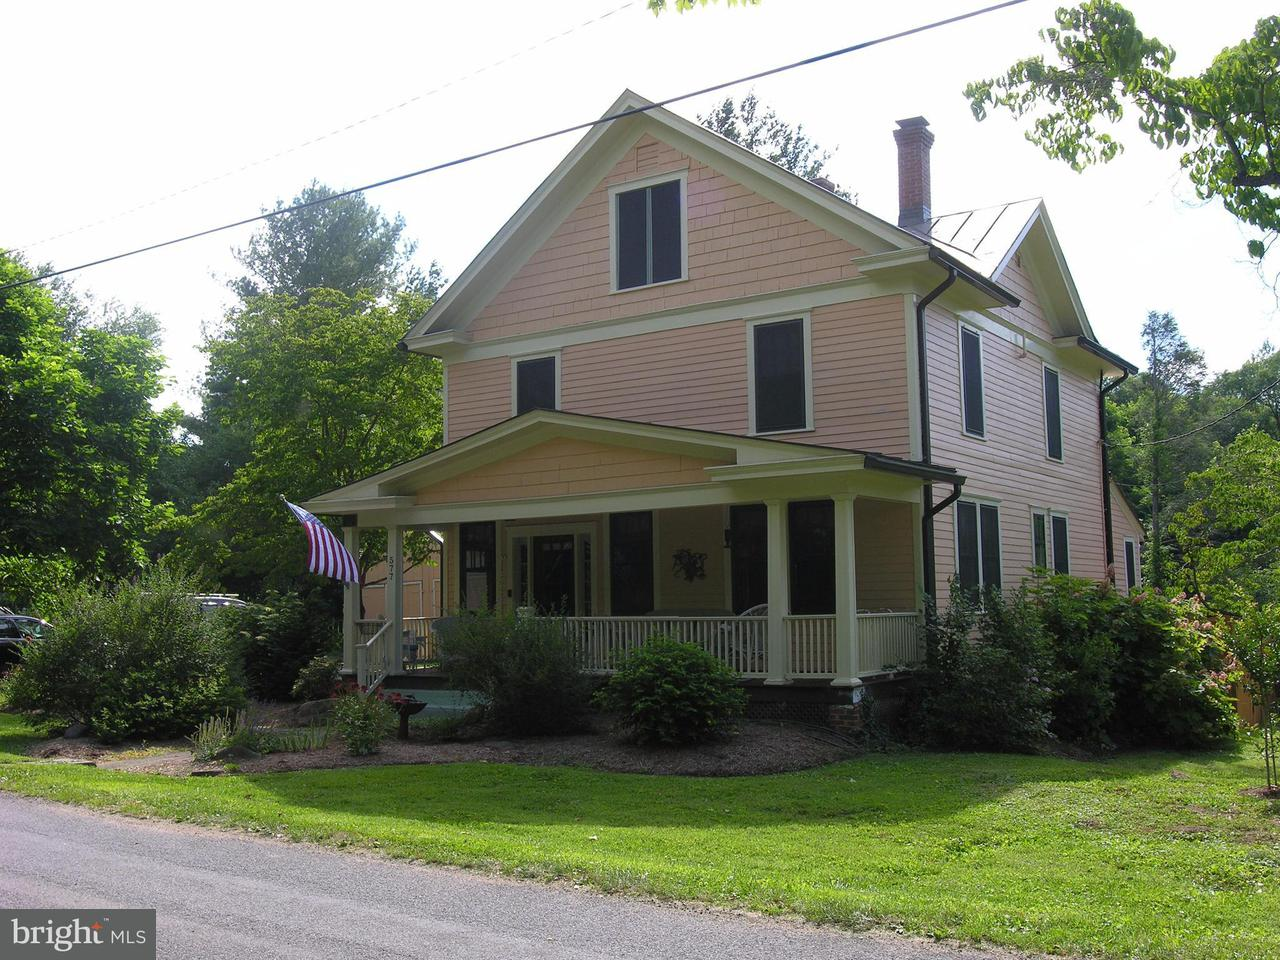 Other Residential for Rent at 577 Main St Washington, Virginia 22747 United States